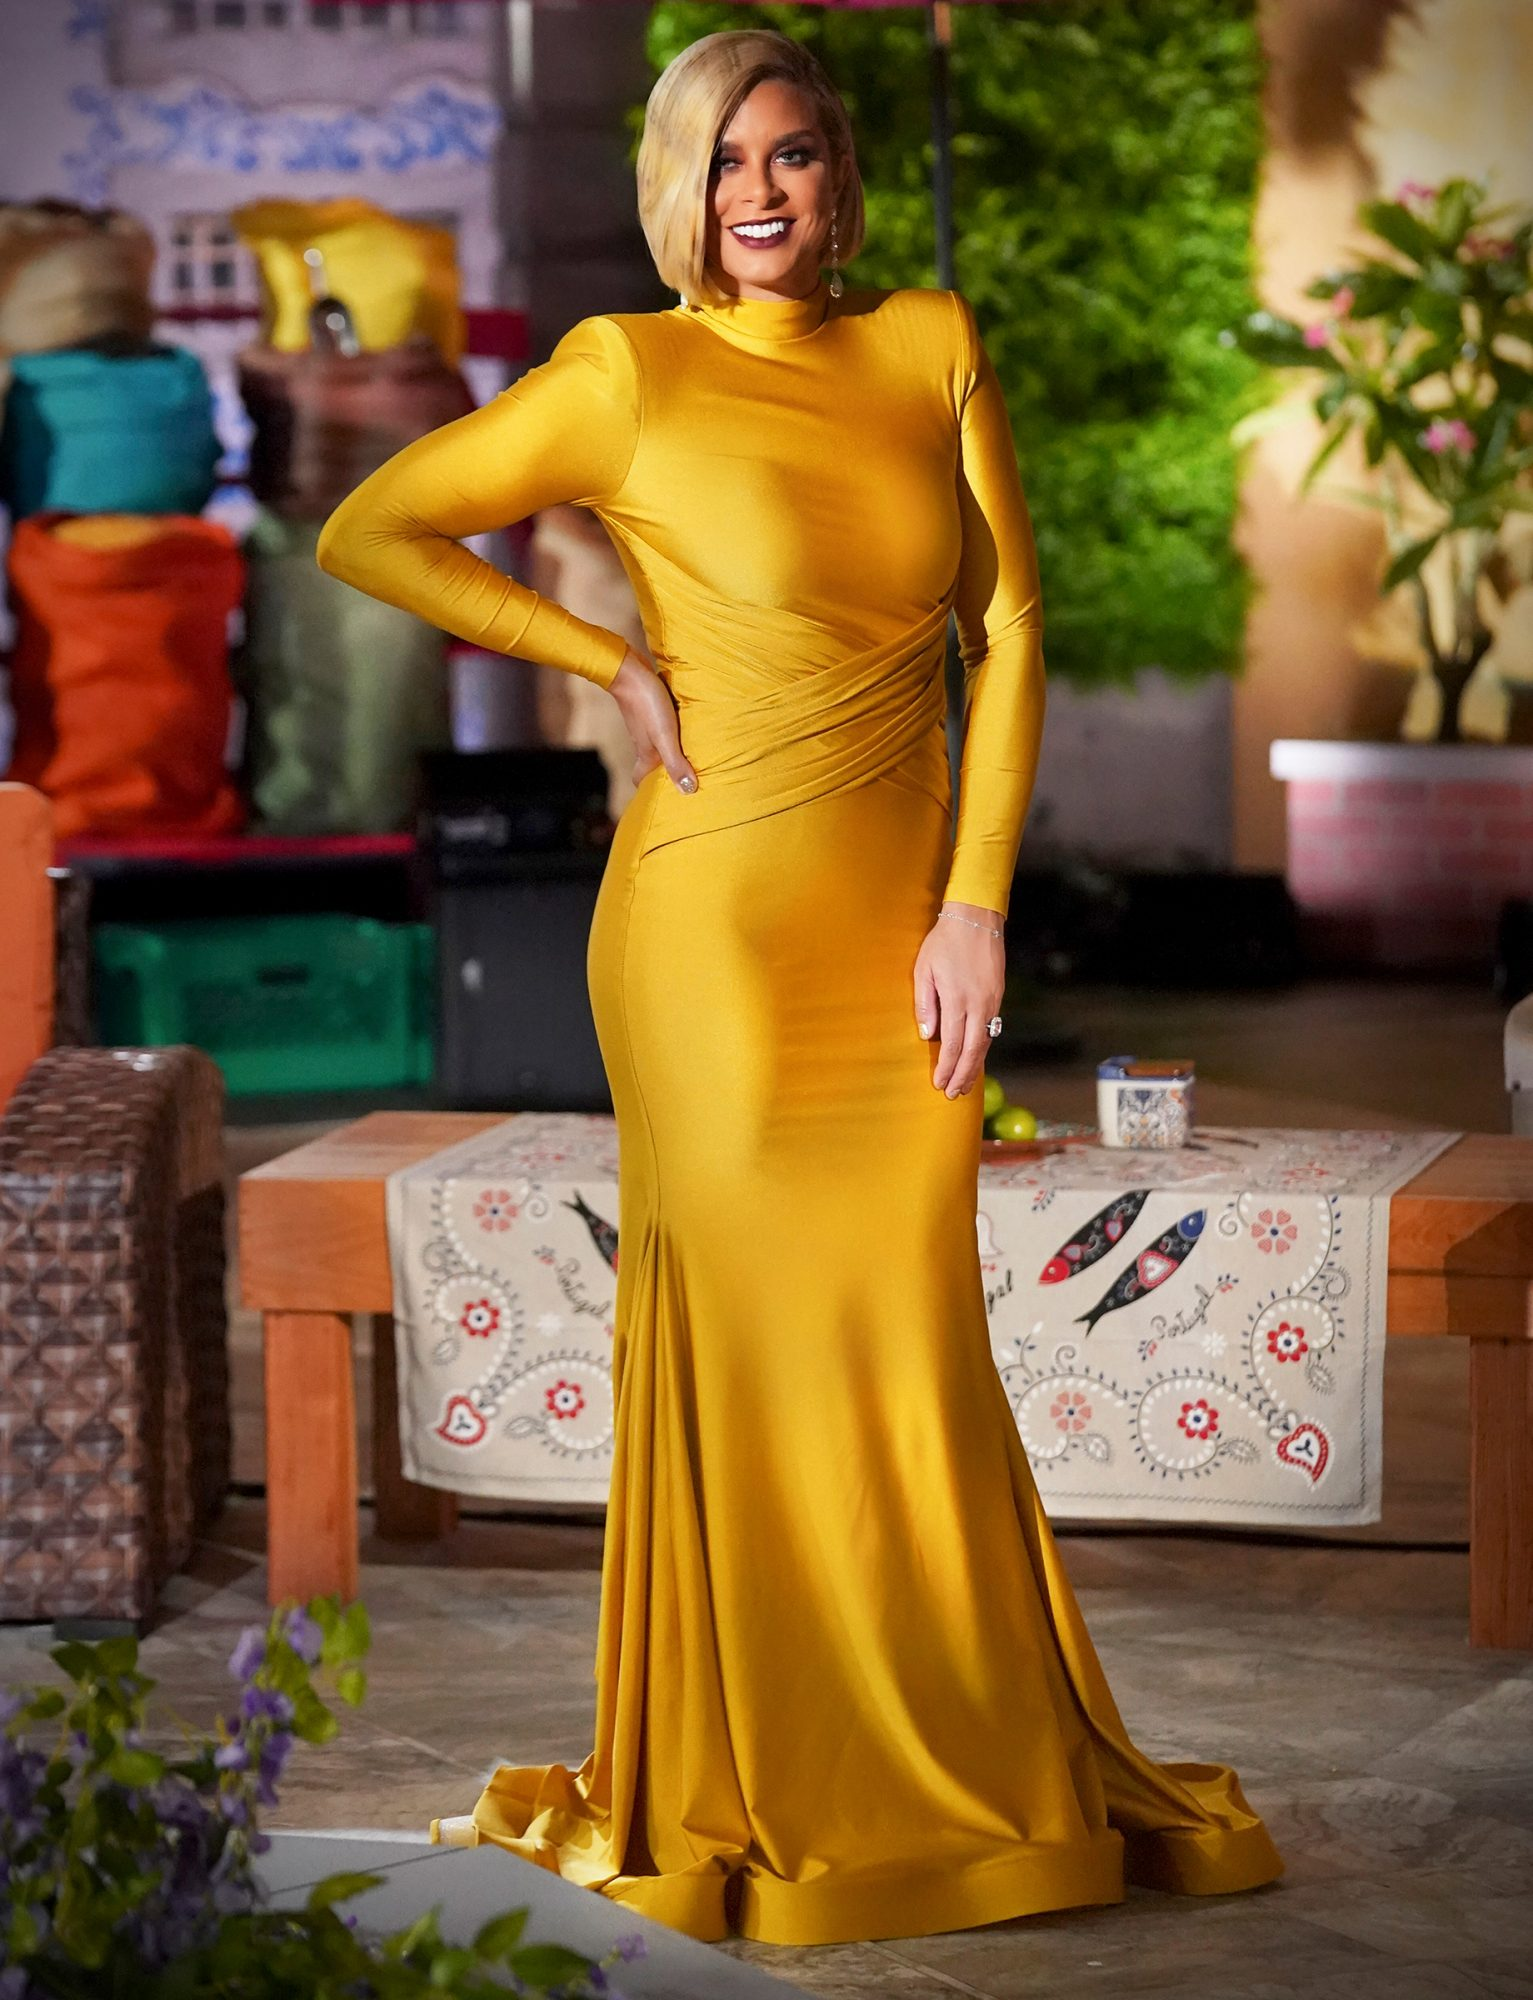 The Real Housewives of Potomac - Robyn Dixon